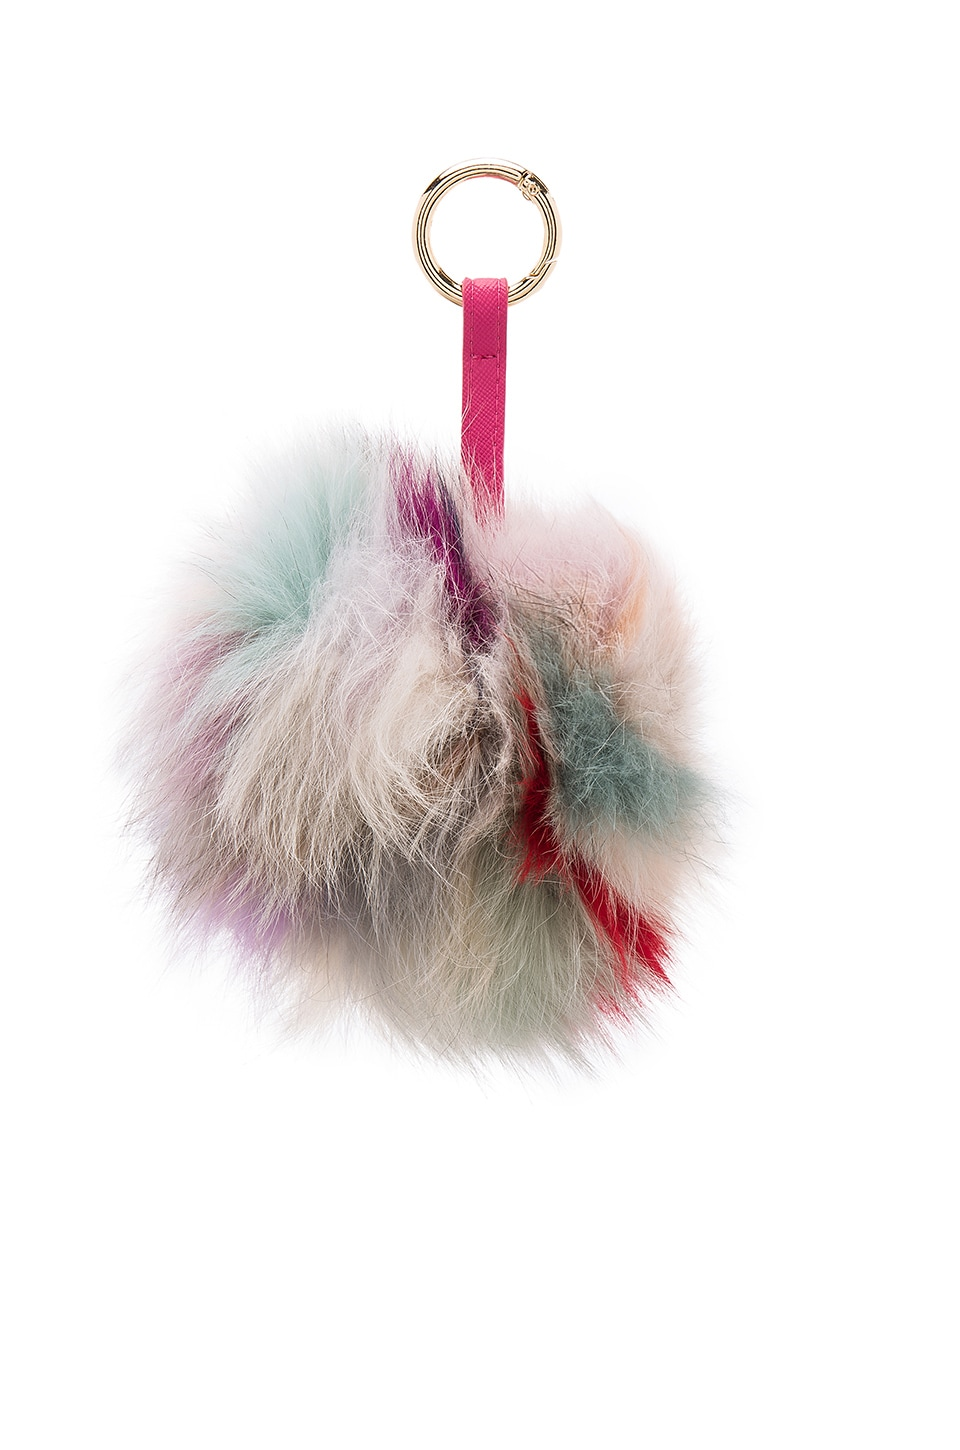 jocelyn Super Swirl Dyed Light Multi Fox Keychain in Multi